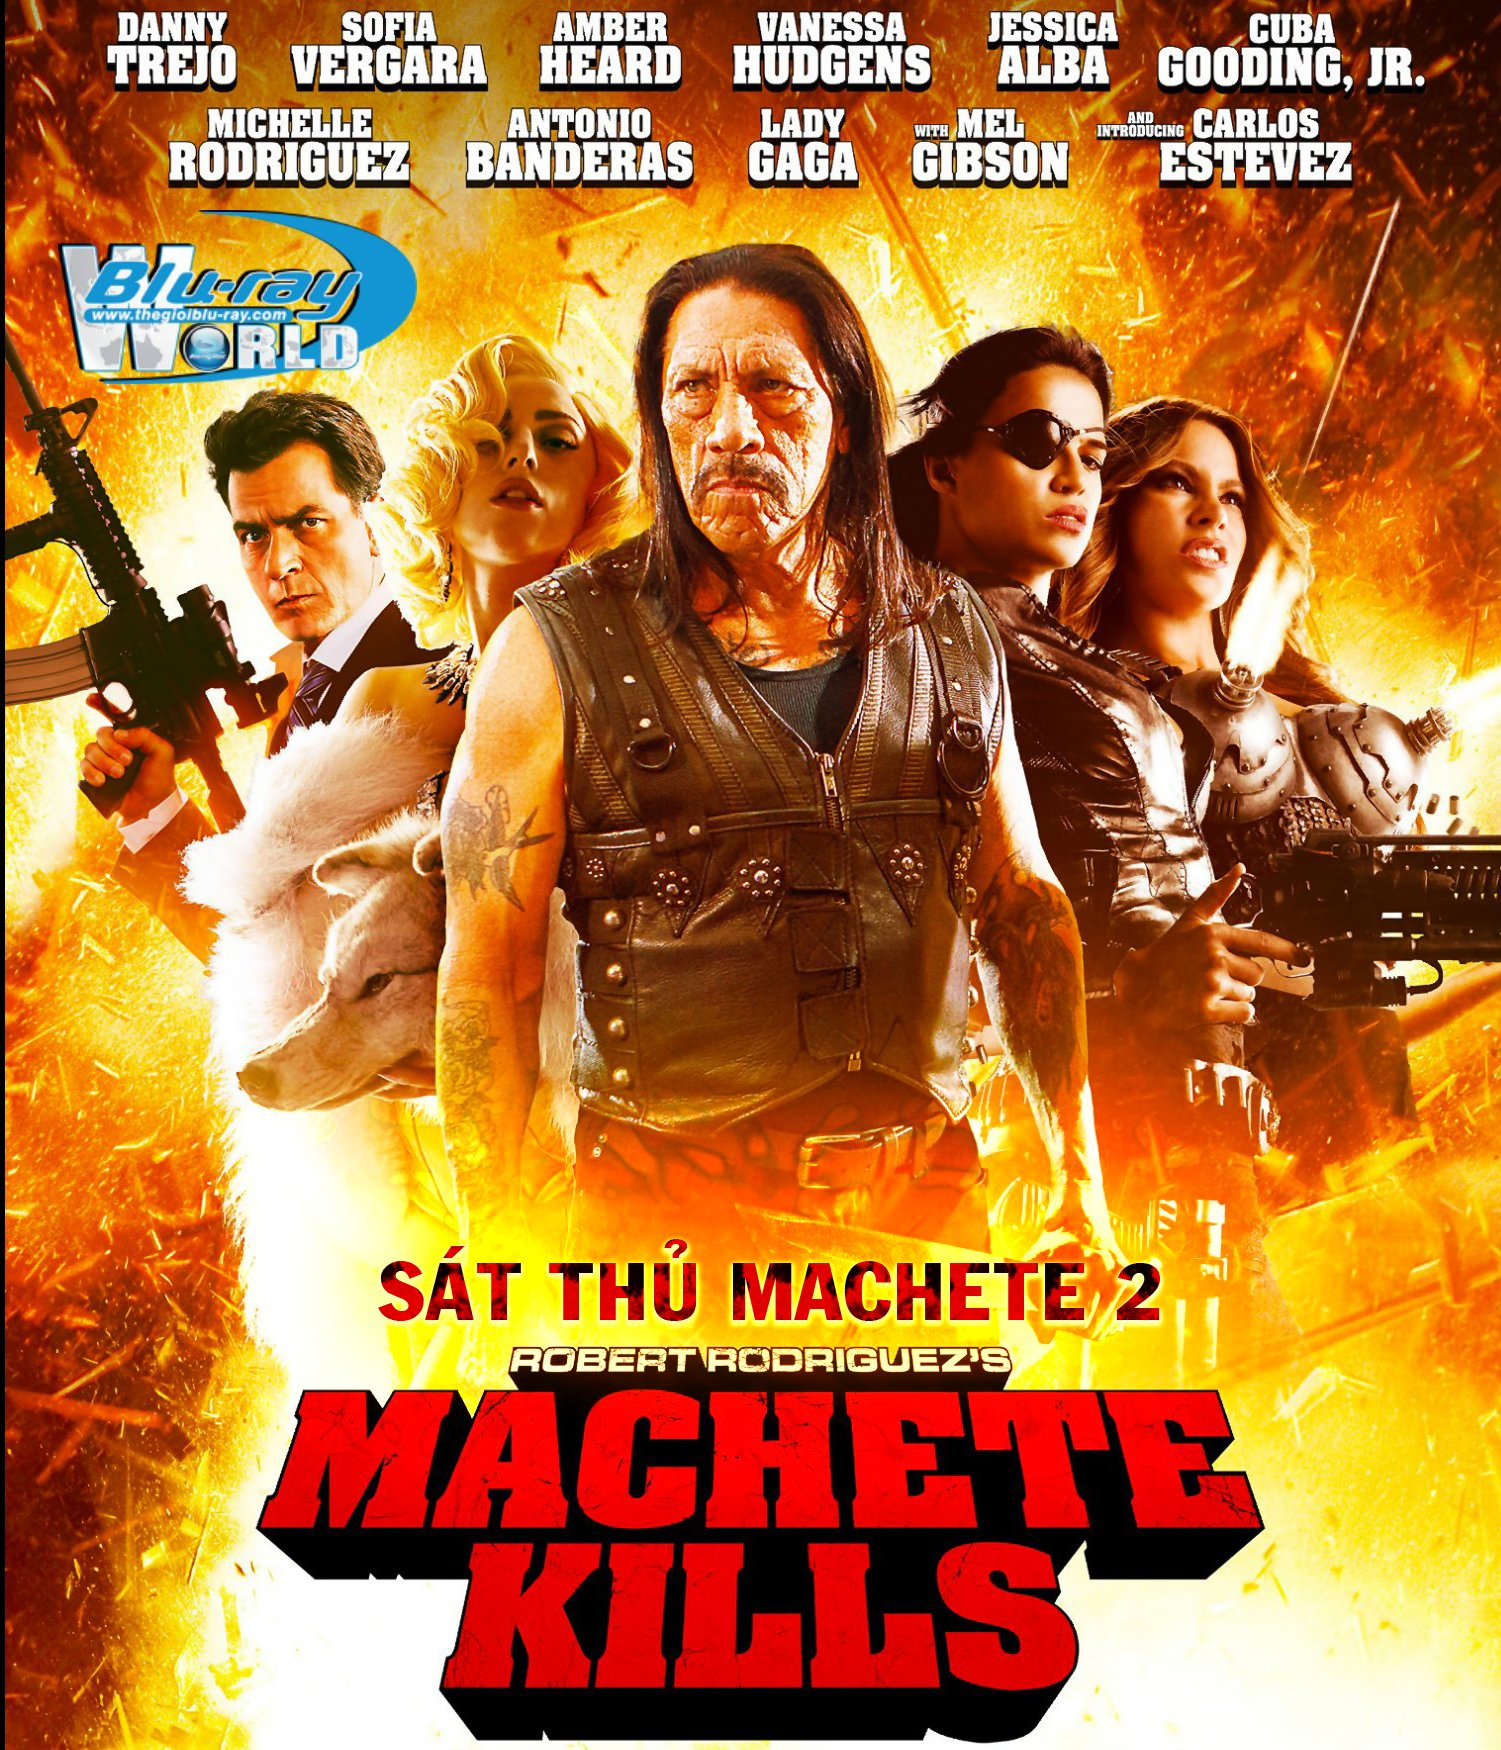 B1576. Machete Kills - SÁT THỦ MACHETE 2 2D 25G (DTS-HD MA 5.1)